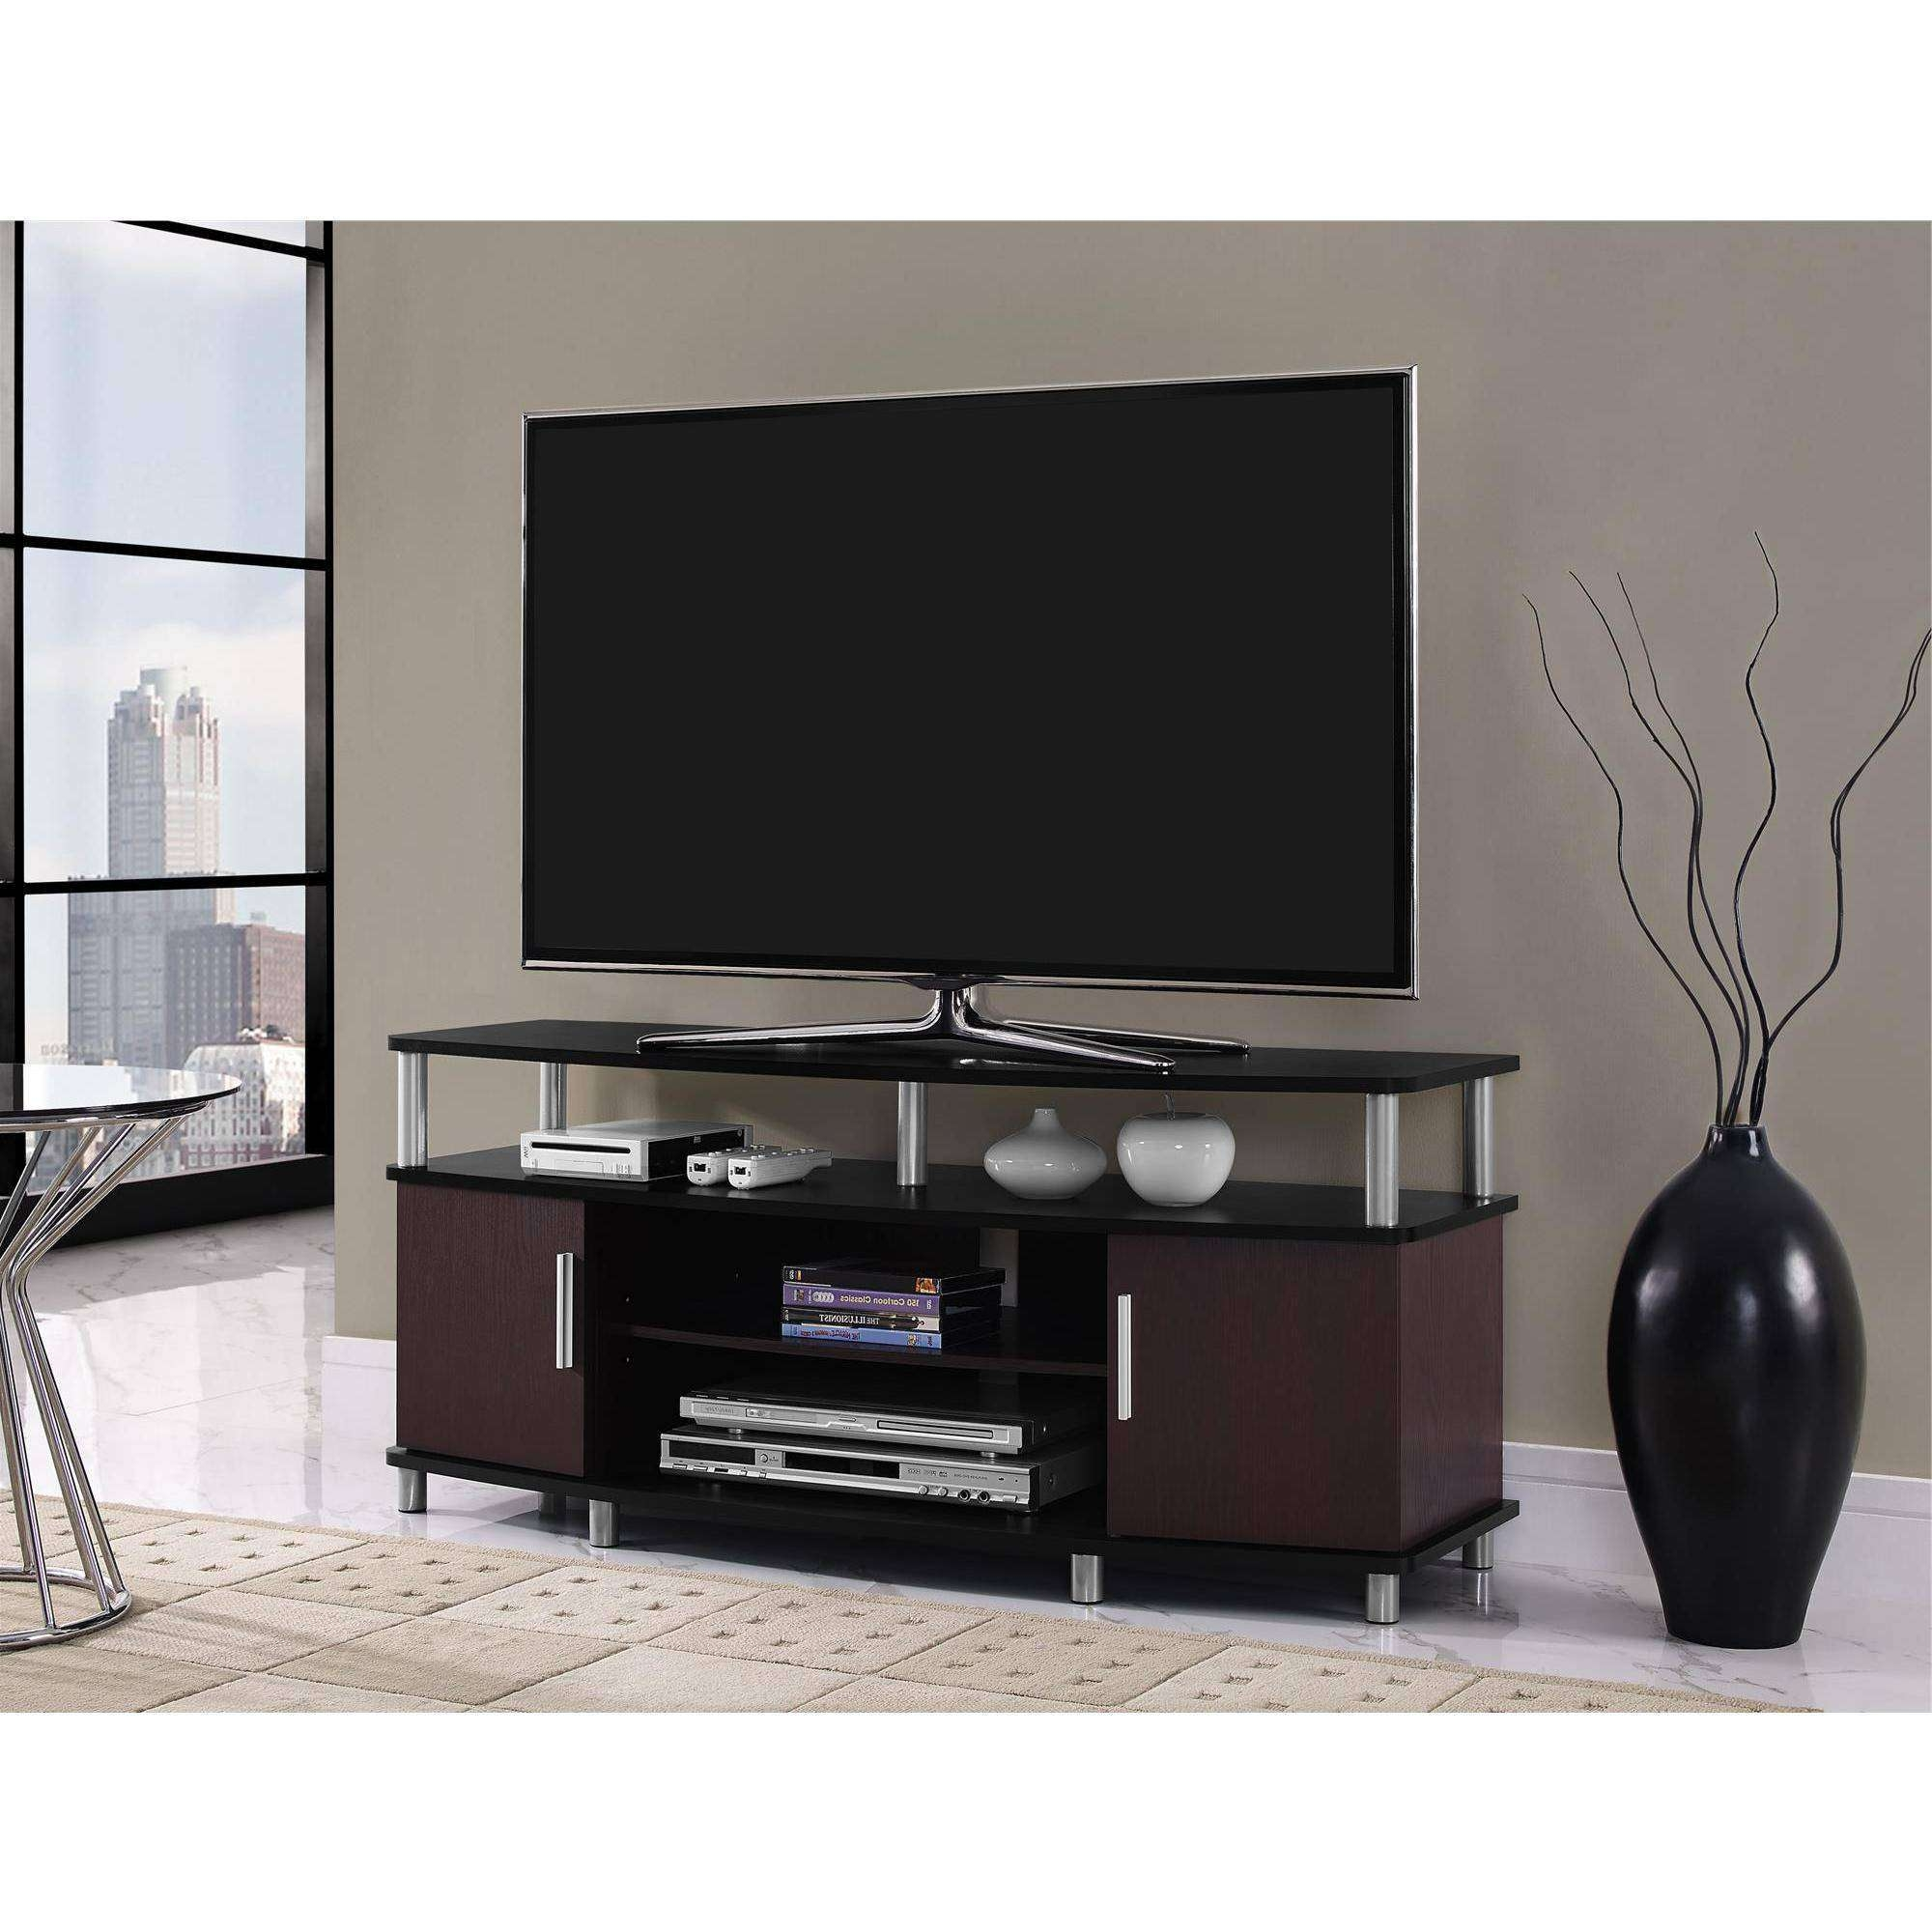 Tv Stands & Entertainment Centers – Walmart With Regard To Wooden Tv Stands For 50 Inch Tv (View 12 of 15)